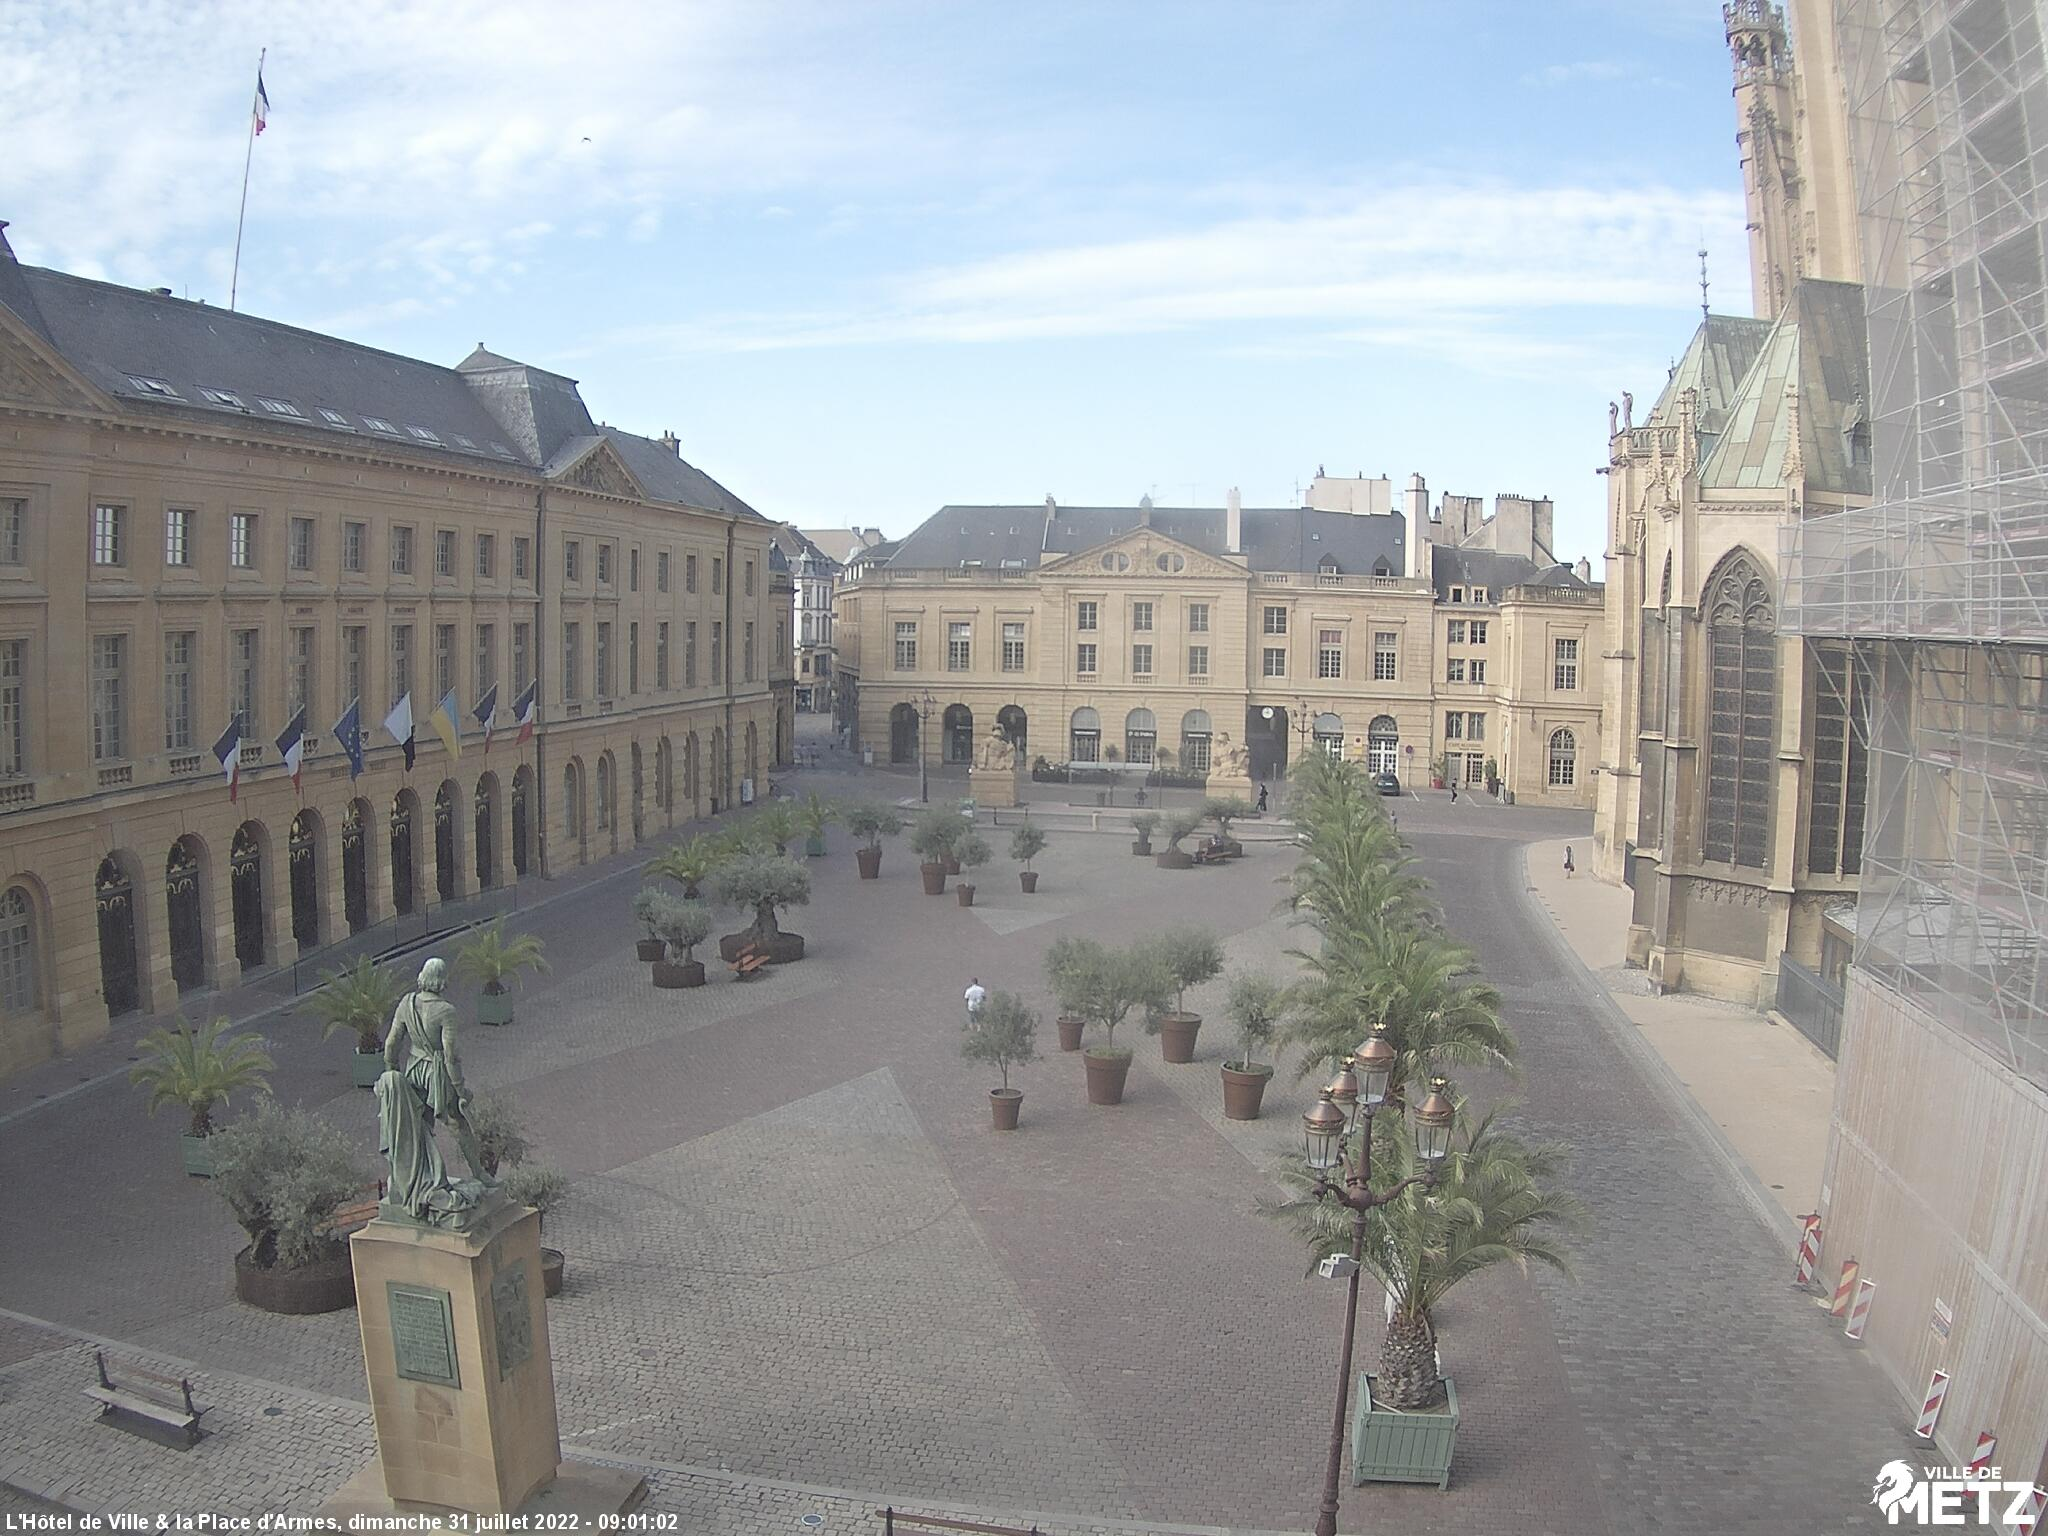 Webcam : la mairie de Metz